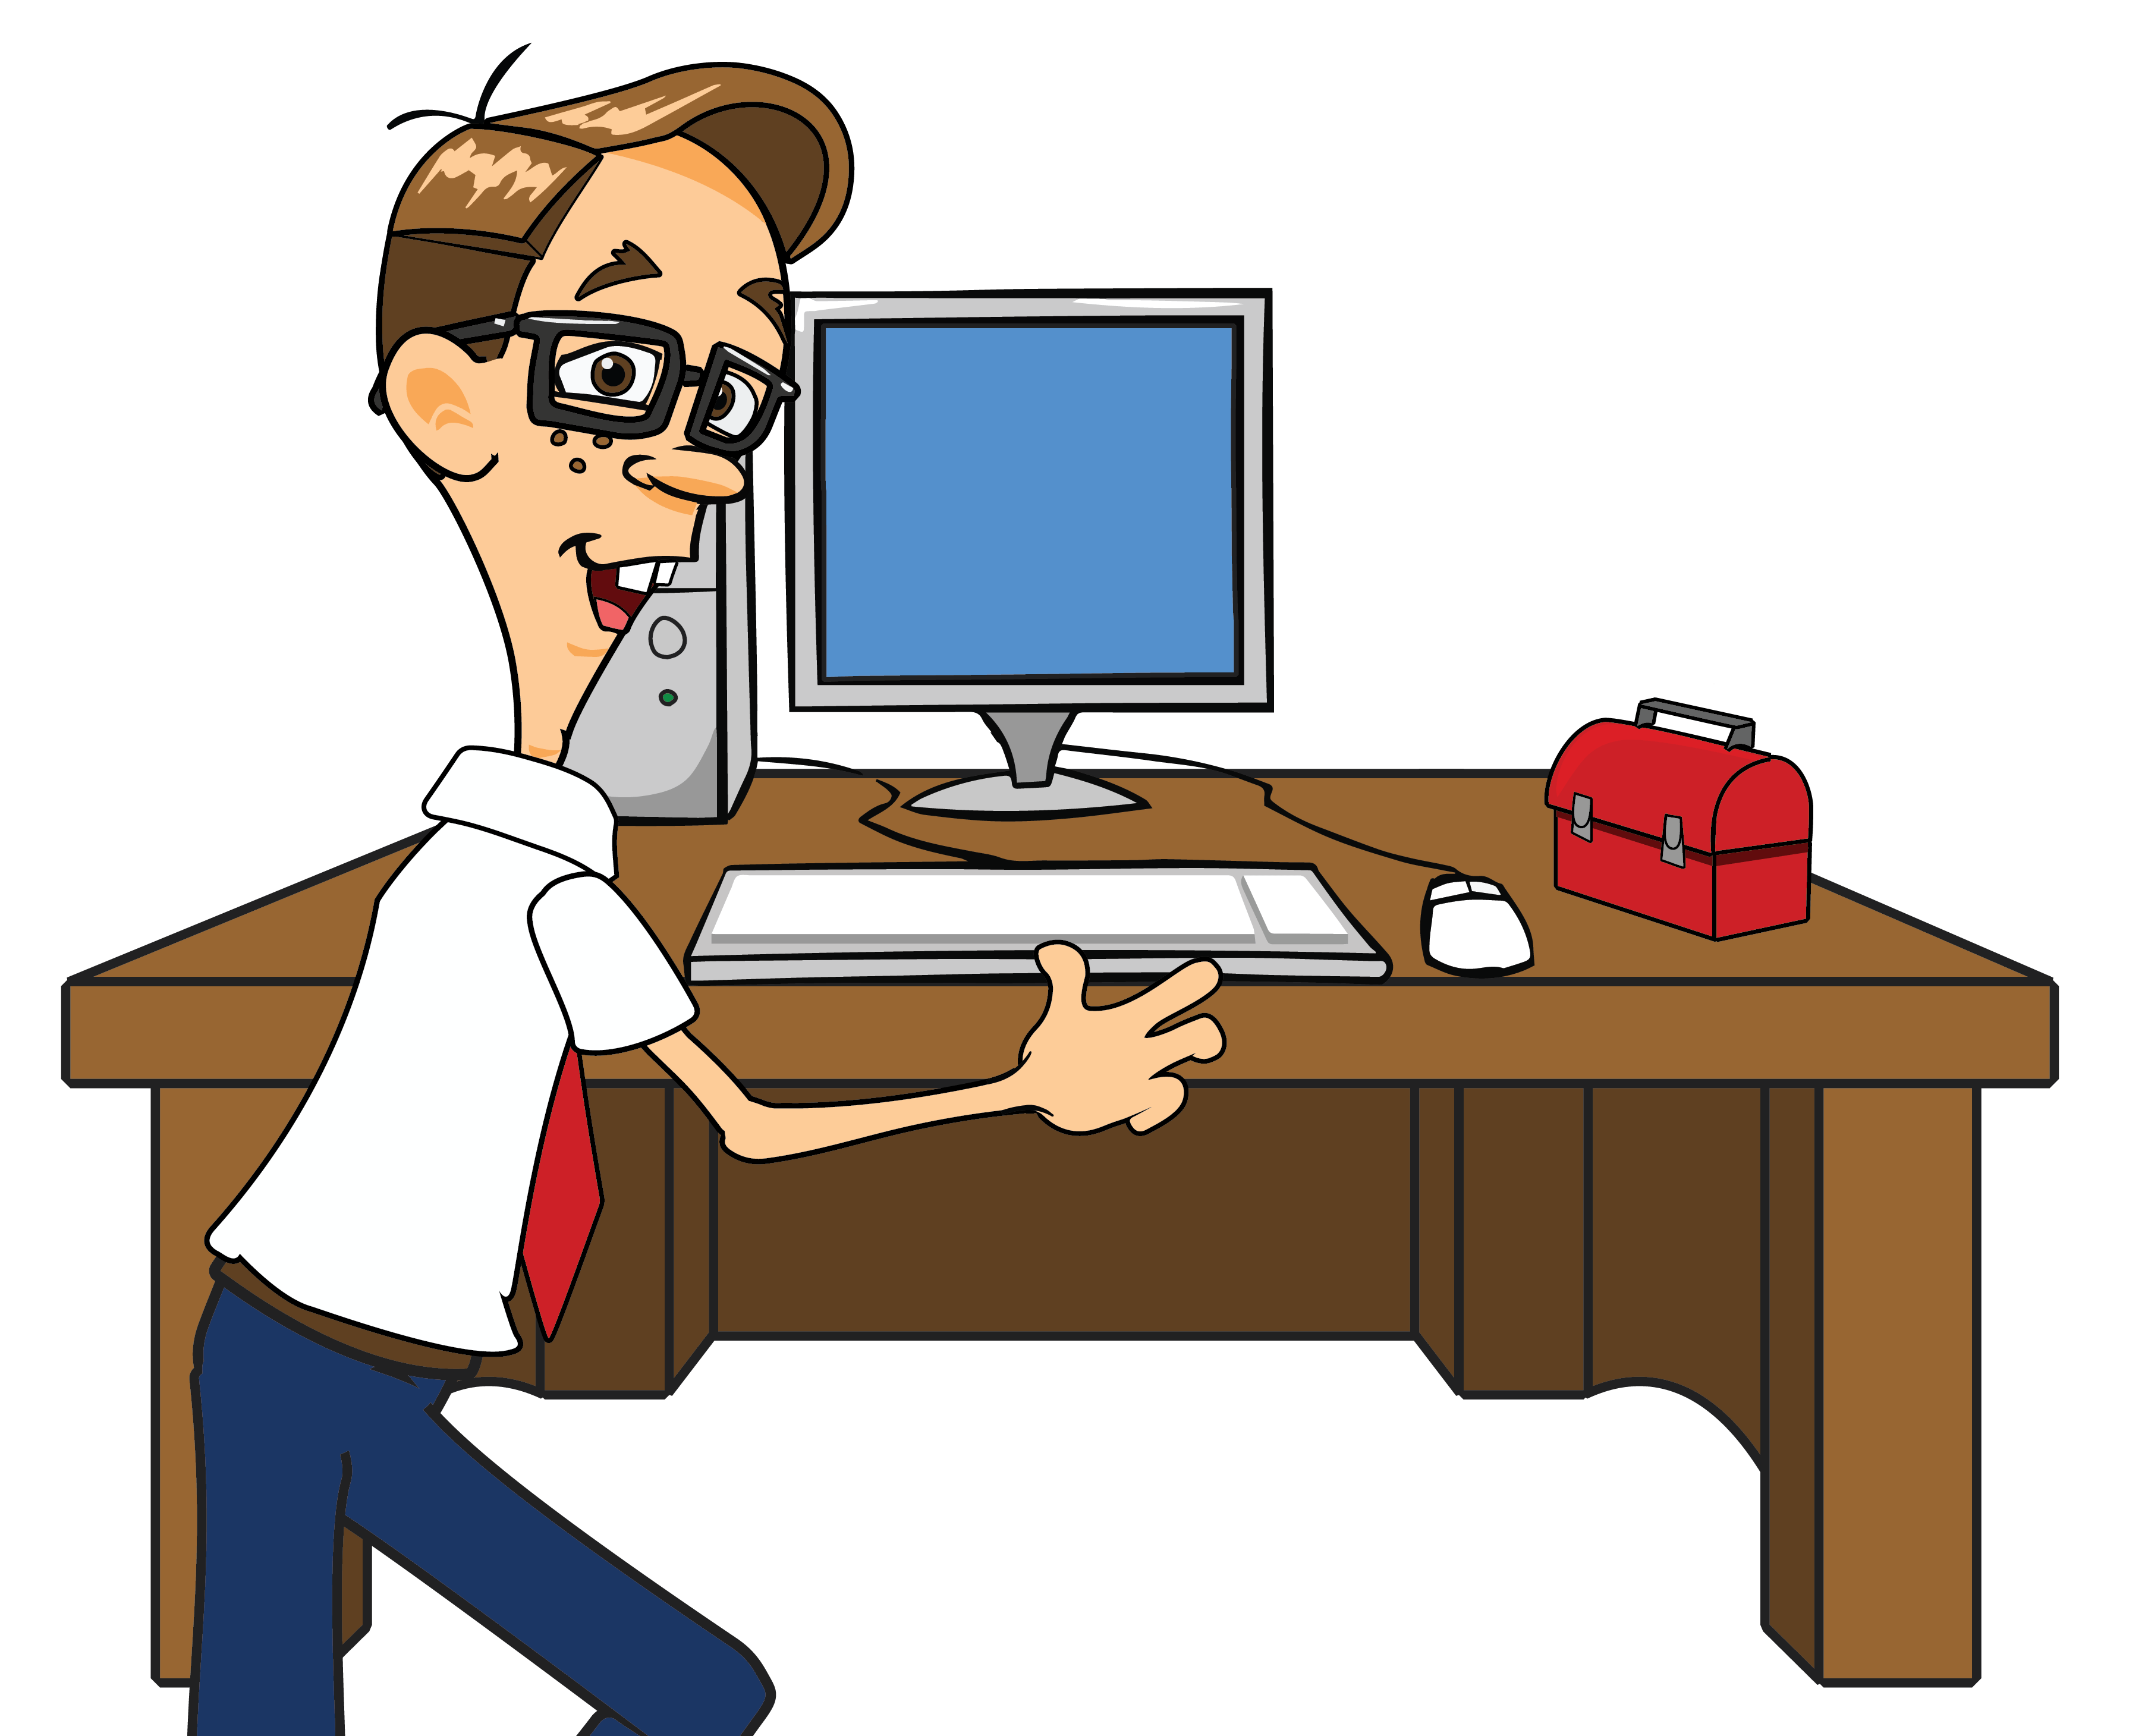 Pc clipart geek cute. Vector tool computer system servicing banner black and white